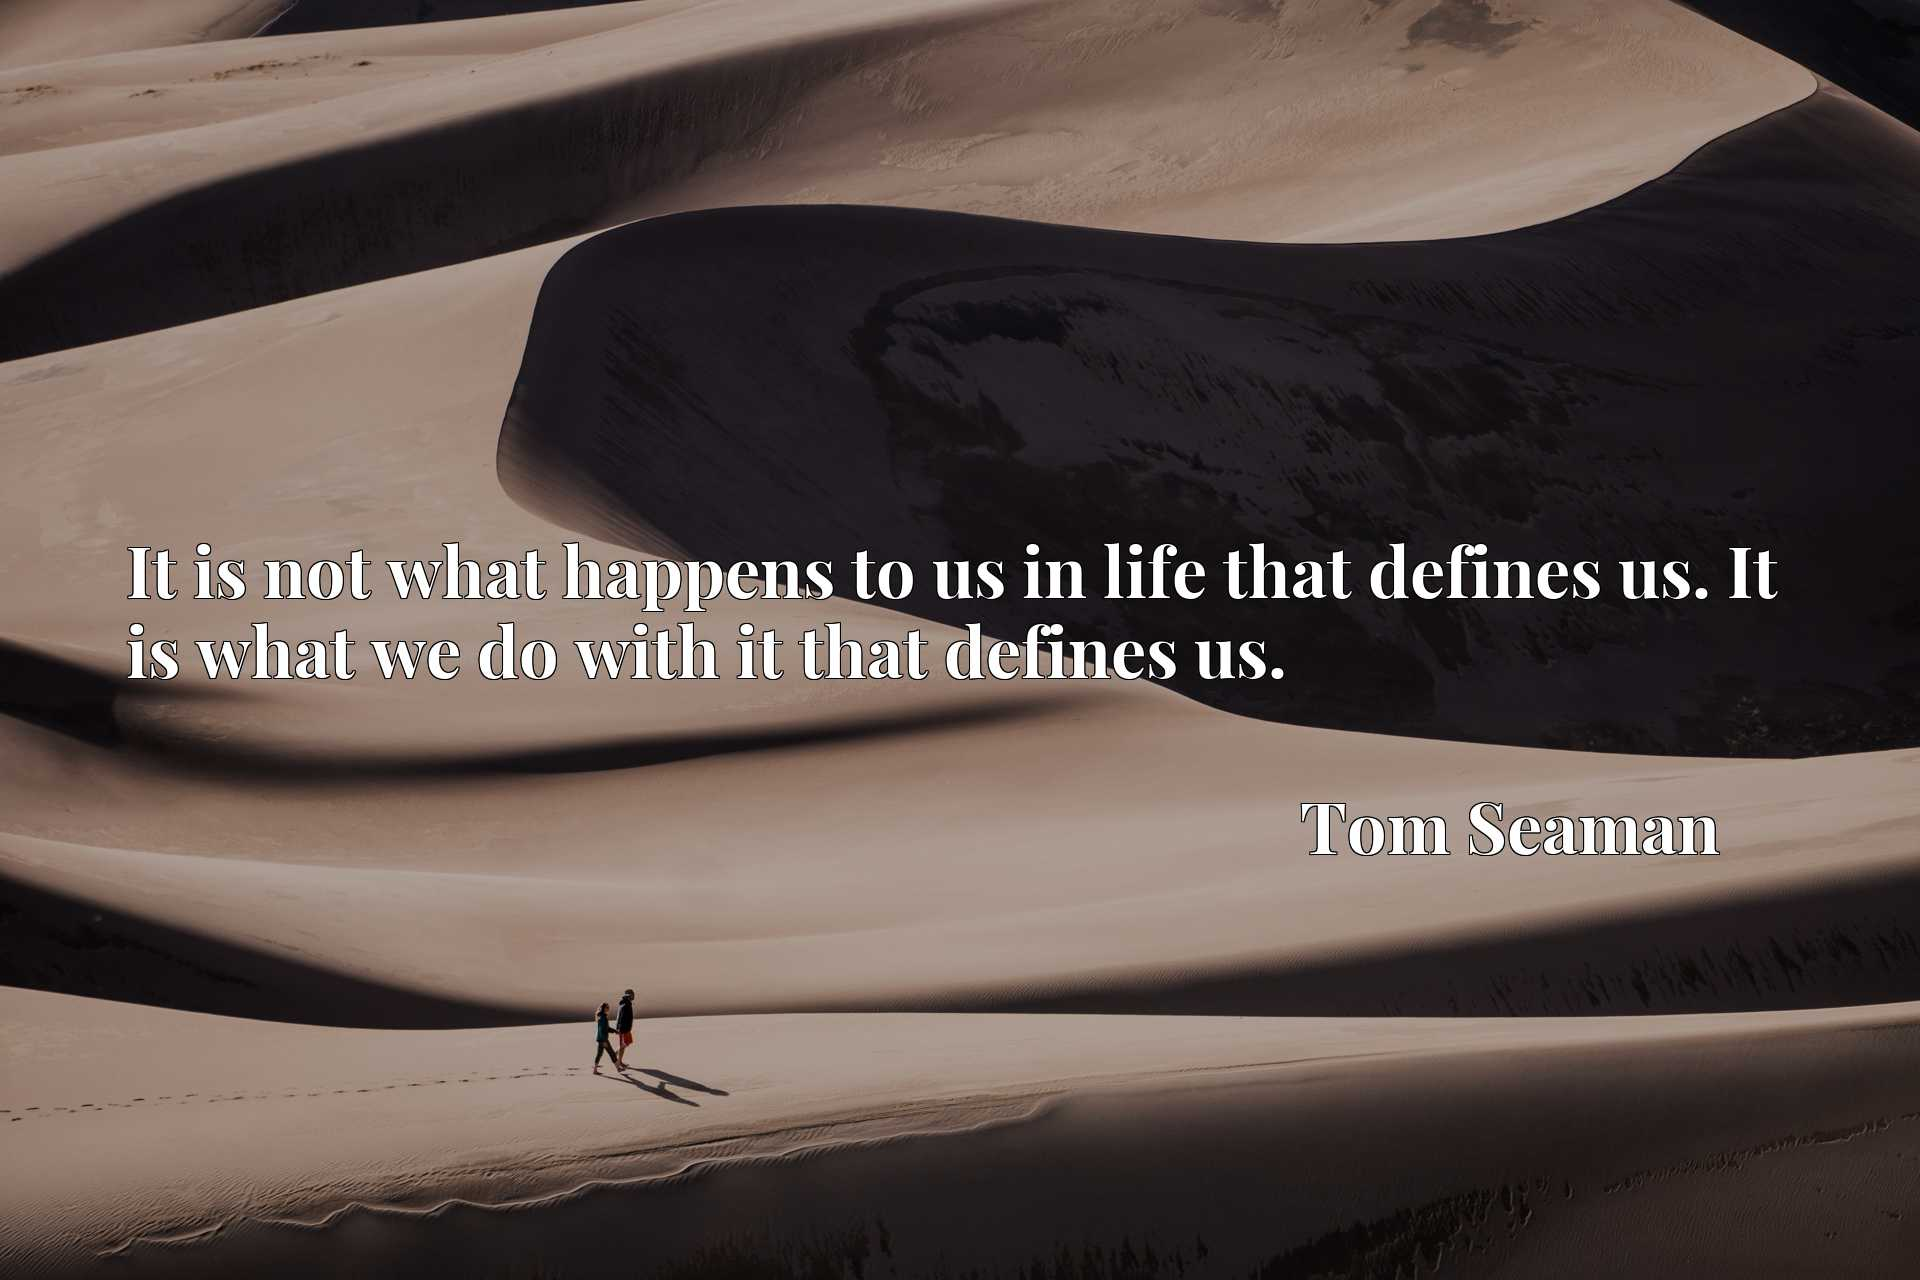 It is not what happens to us in life that defines us. It is what we do with it that defines us.